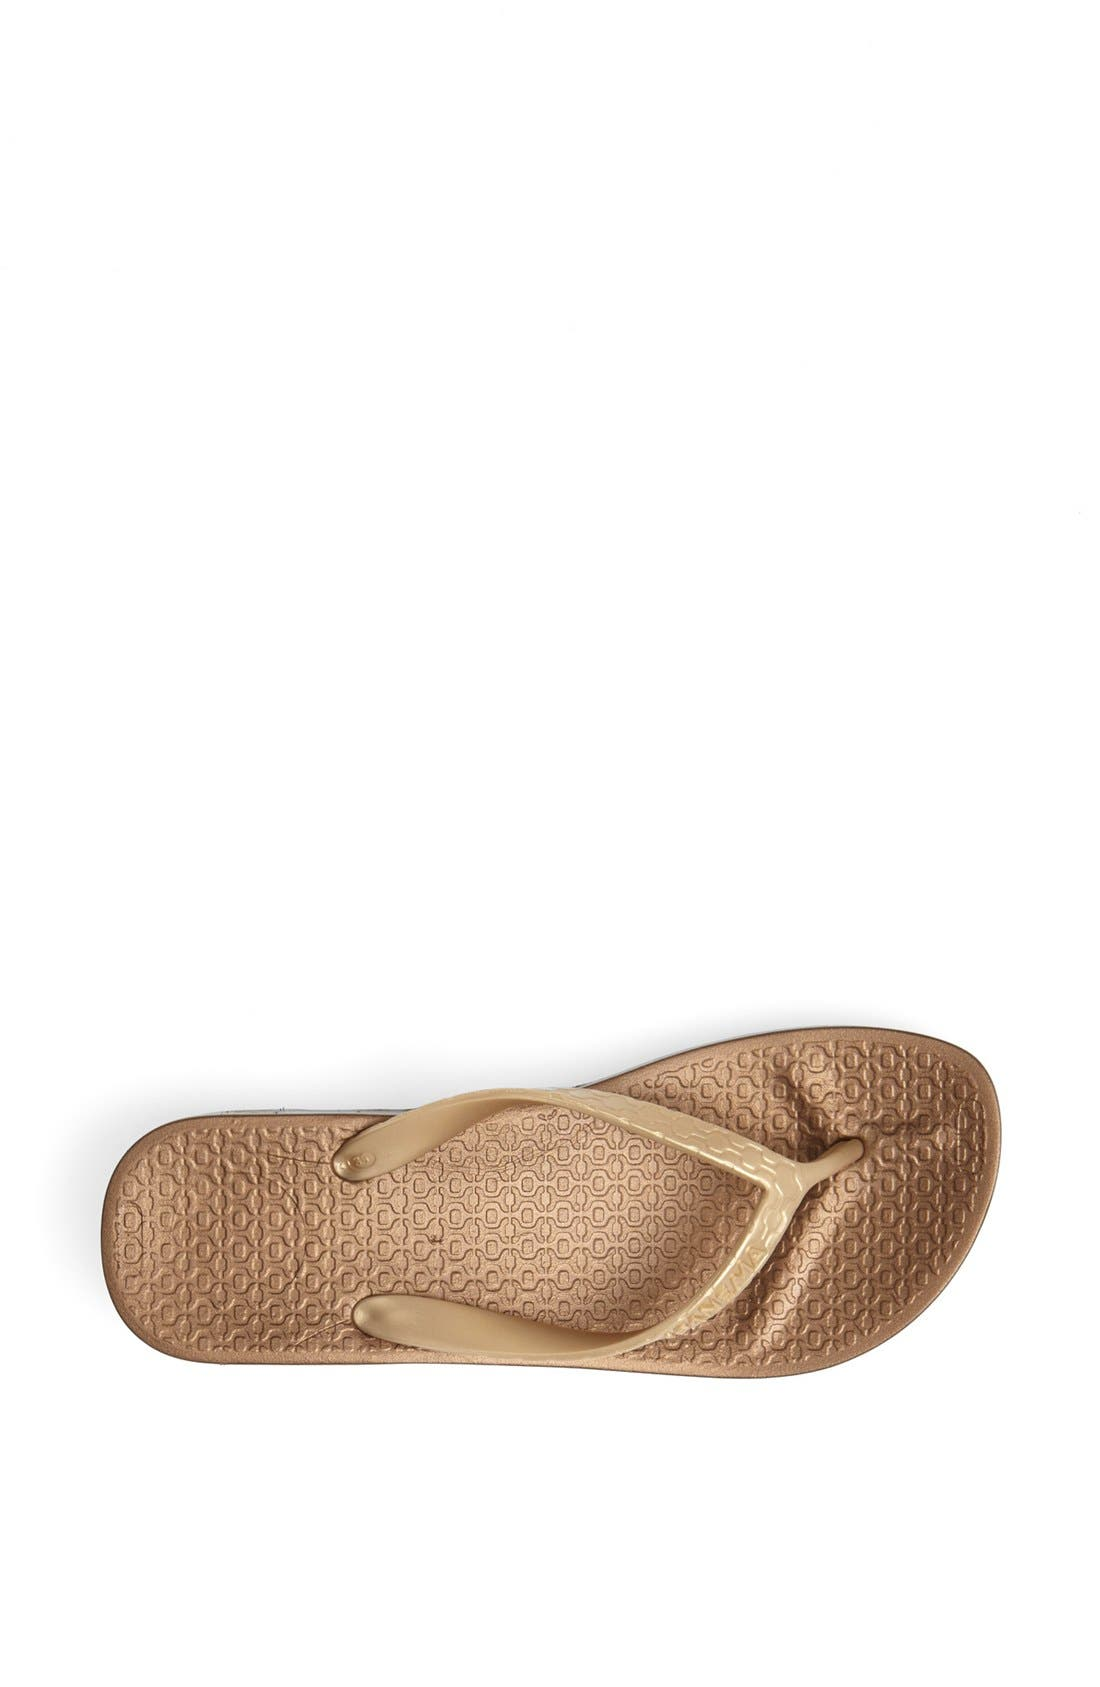 Alternate Image 3  - Ipanema 'Tropical' Flip Flop